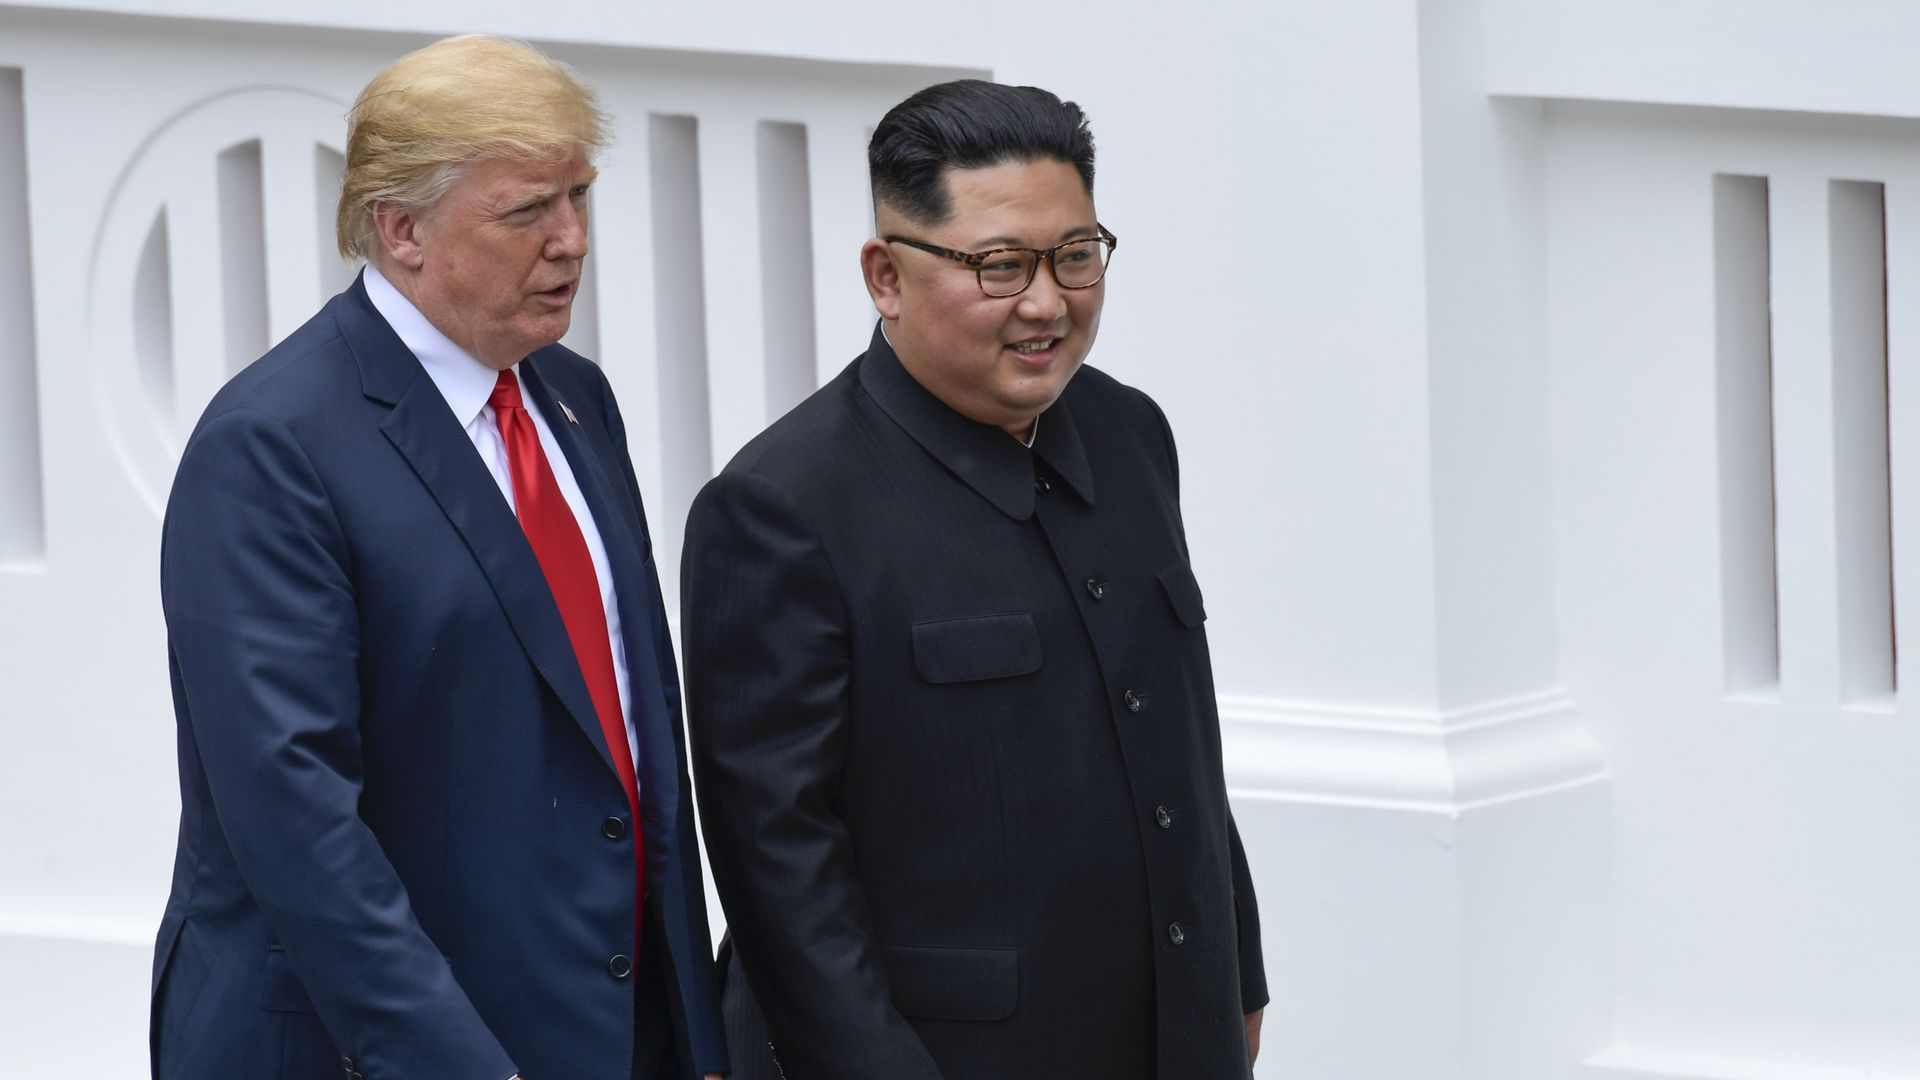 US President Donald Trump and North Korea leader Kim Jong Un walk from lunch at the Capella resort on Sentosa Island in Singapore